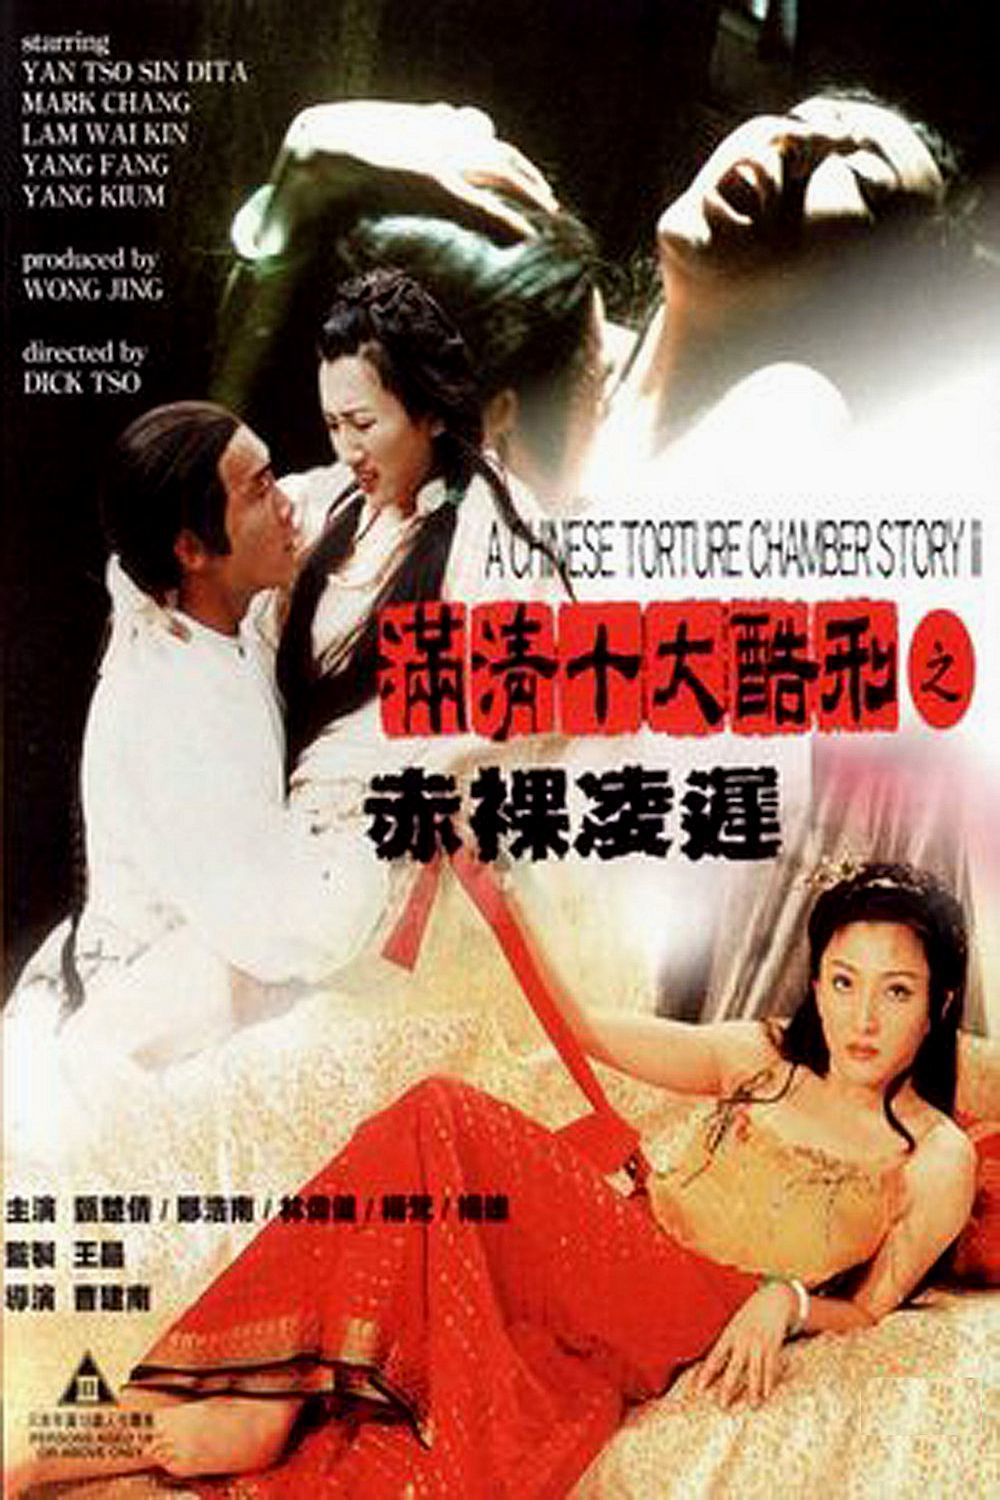 """Poster for the movie """"A Chinese Torture Chamber Story II"""""""